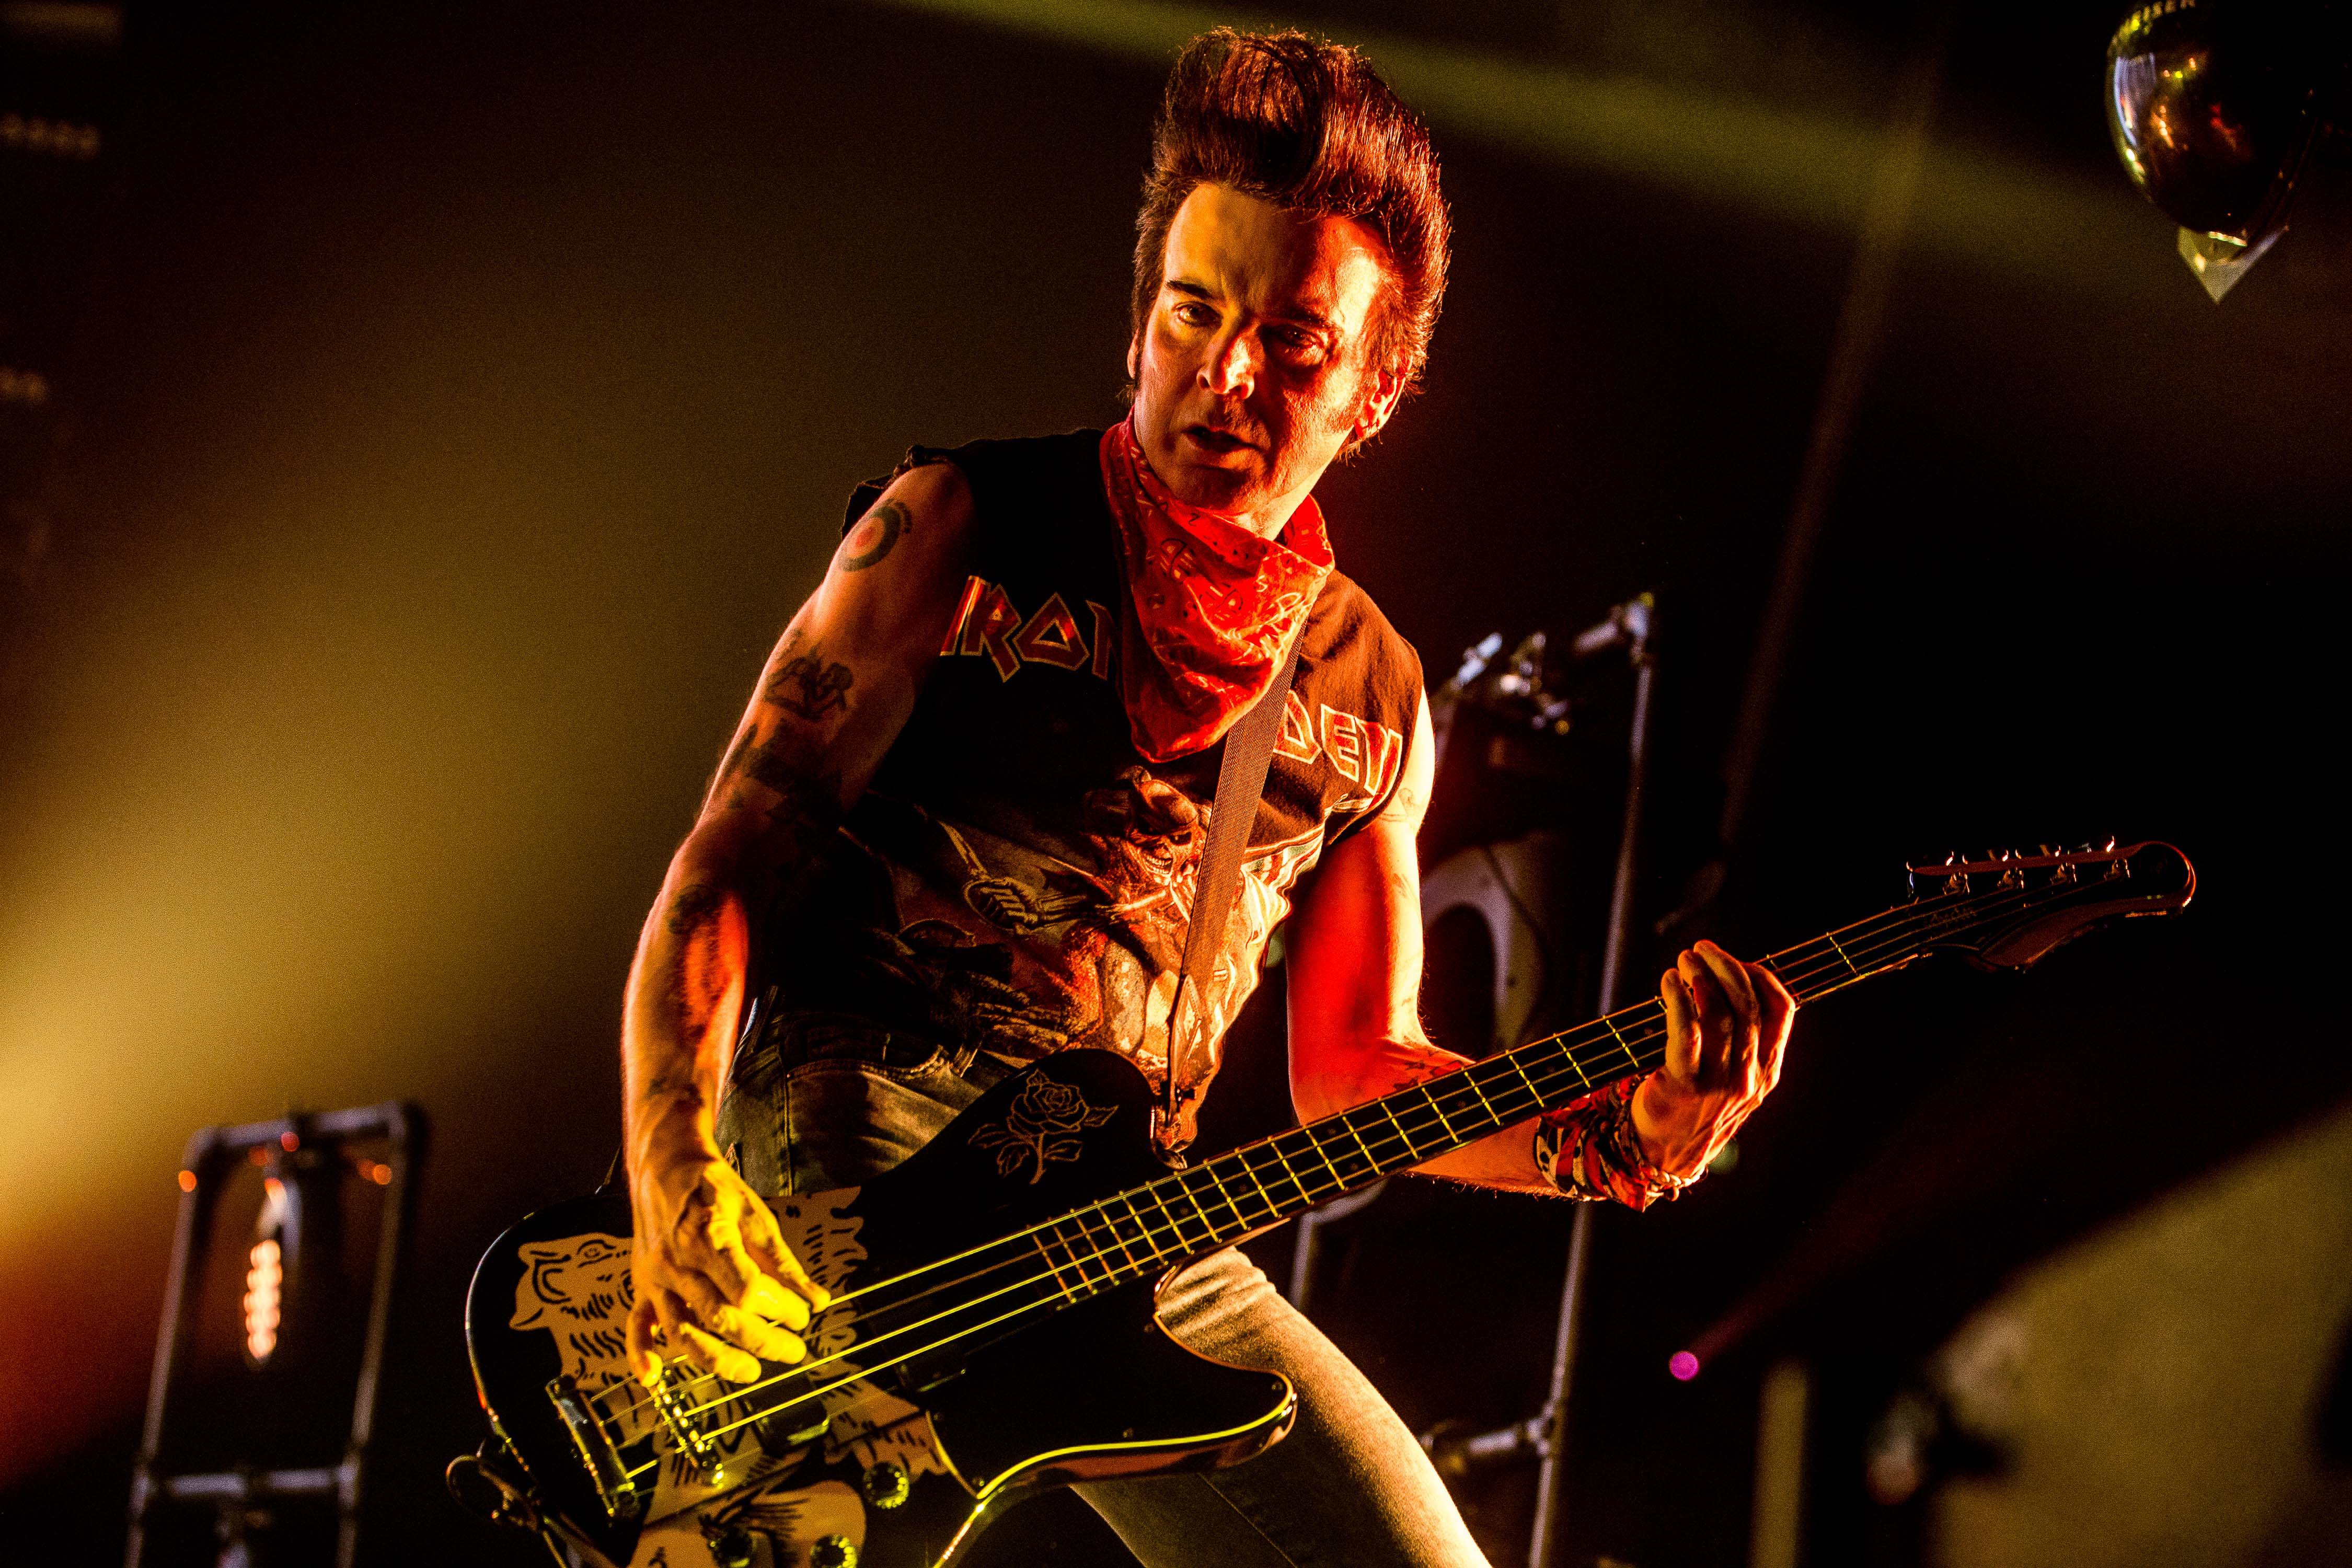 The Cure's Simon Gallup replaced by his son on bass as he's forced to pull out of Japanese festival